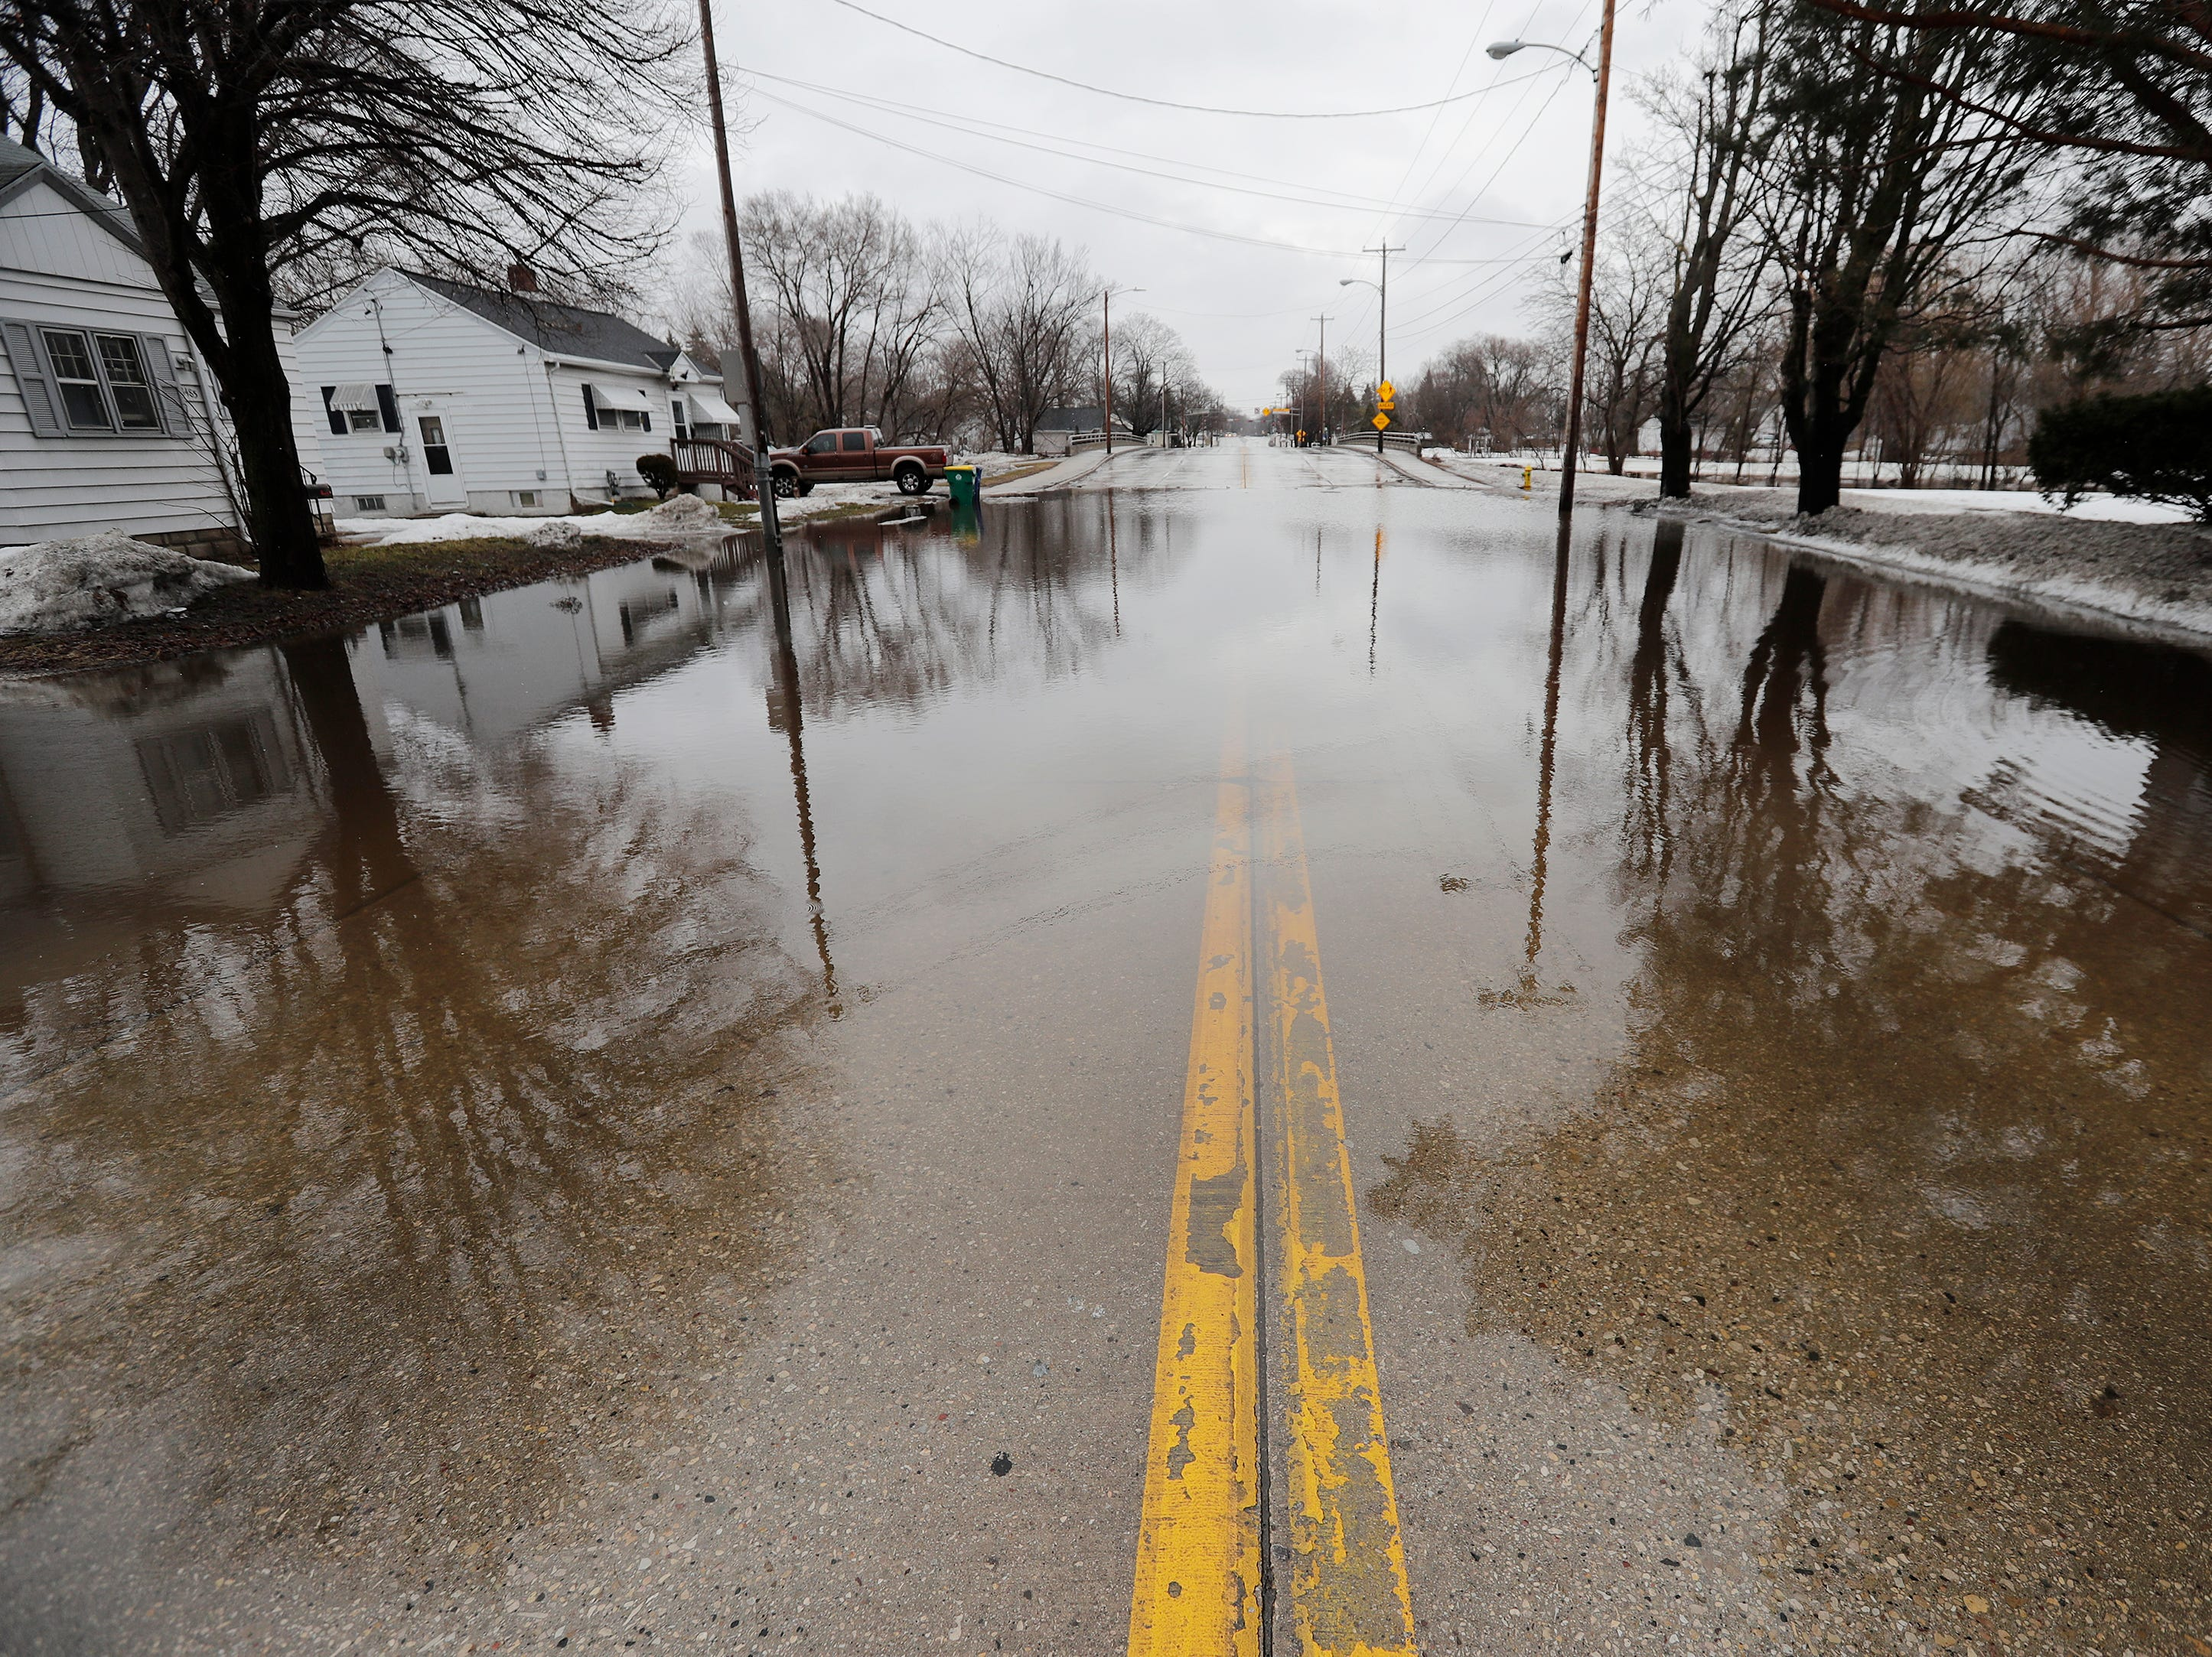 Mason Street is closed due to floodwaters from the East river on Friday, March 15, 2019 in Green Bay, Wis.